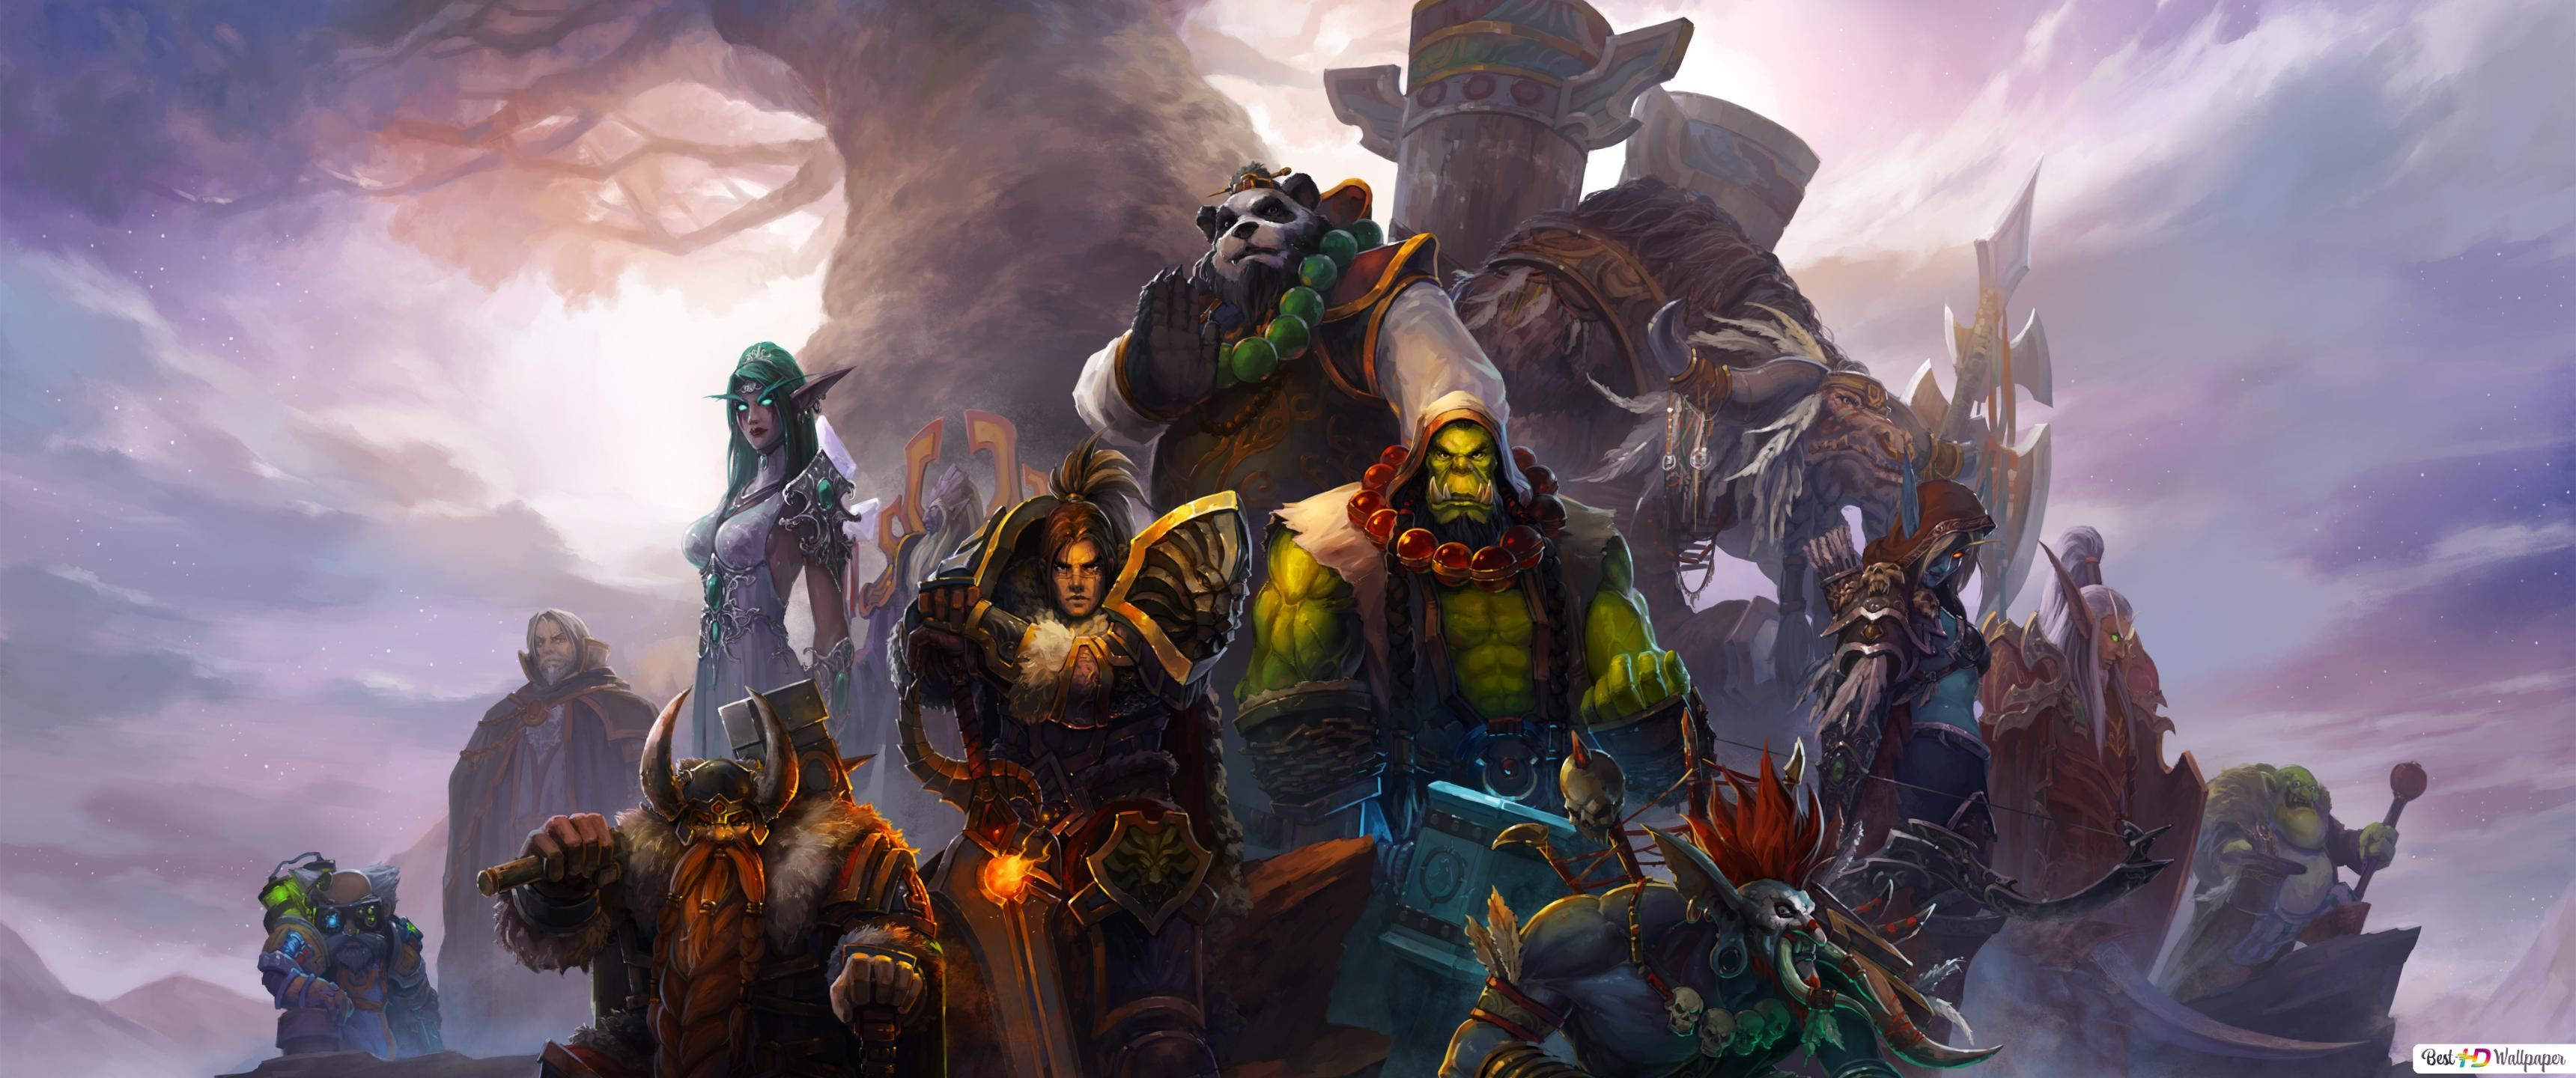 Descargar Fondo De Pantalla World Of Warcraft Orco Guerrero Hd